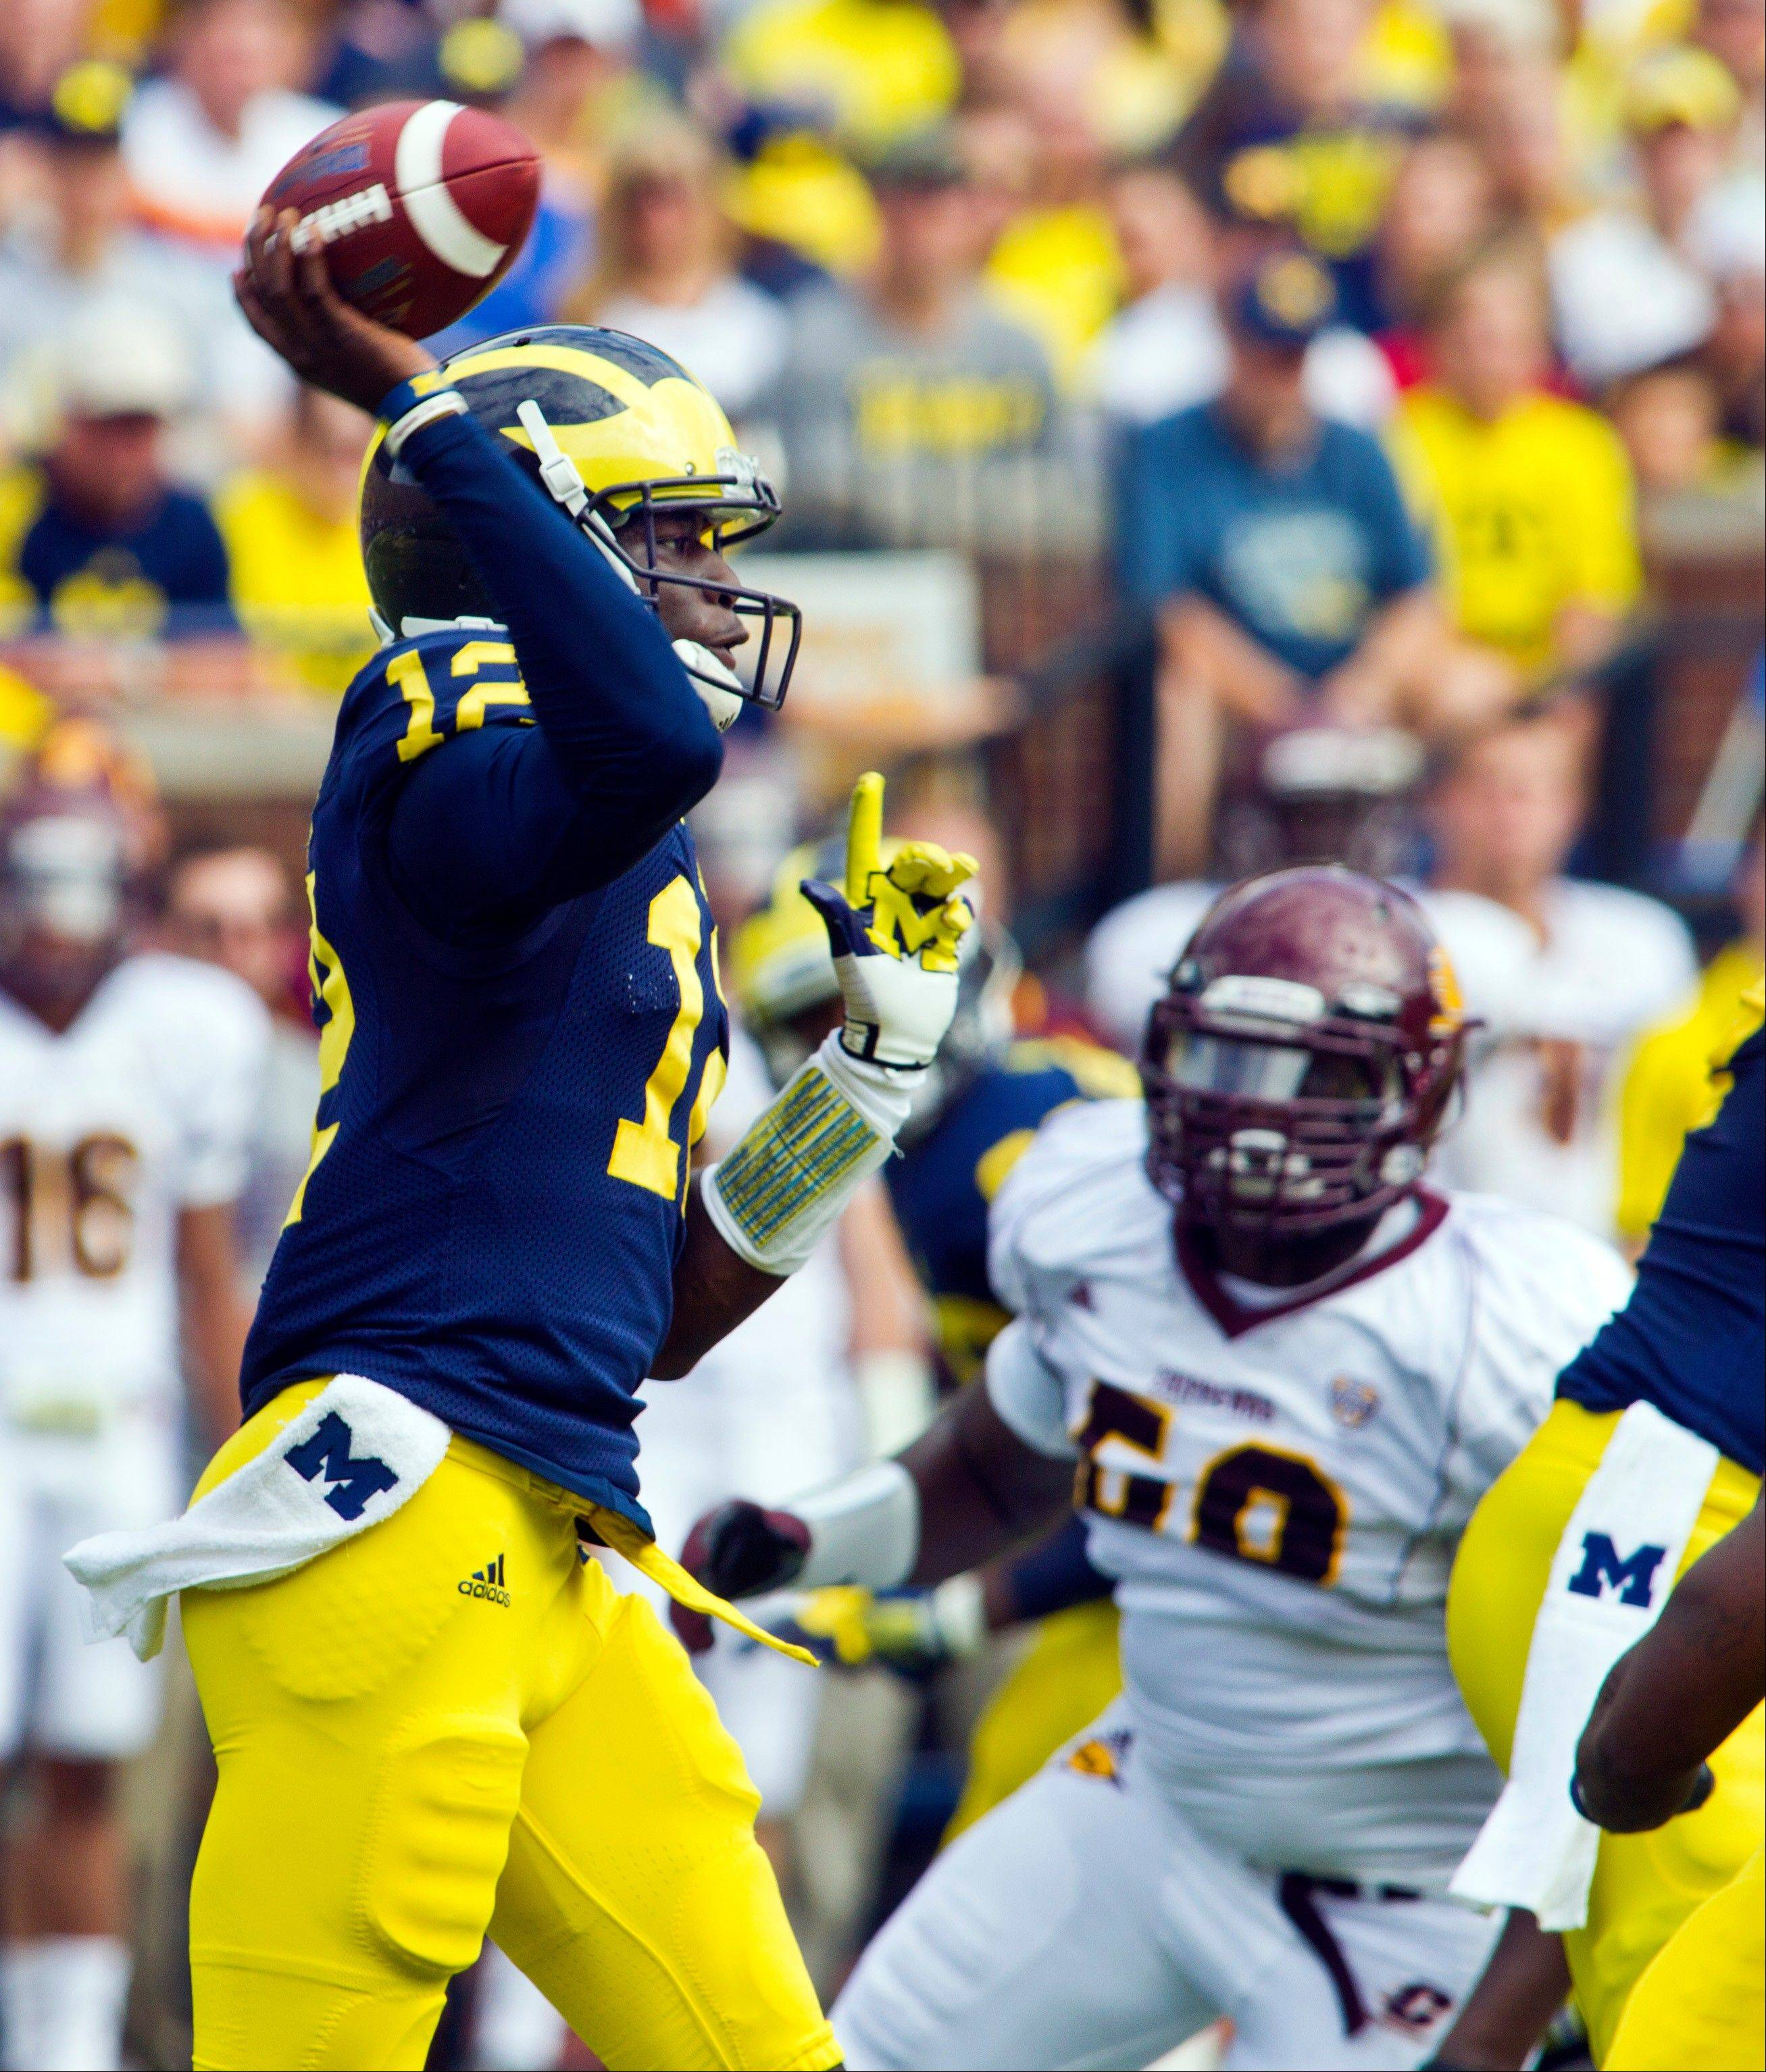 Michigan quarterback Devin Gardner throws a pass in the first quarter of Saturday's game with Central Michigan in Ann Arbor.